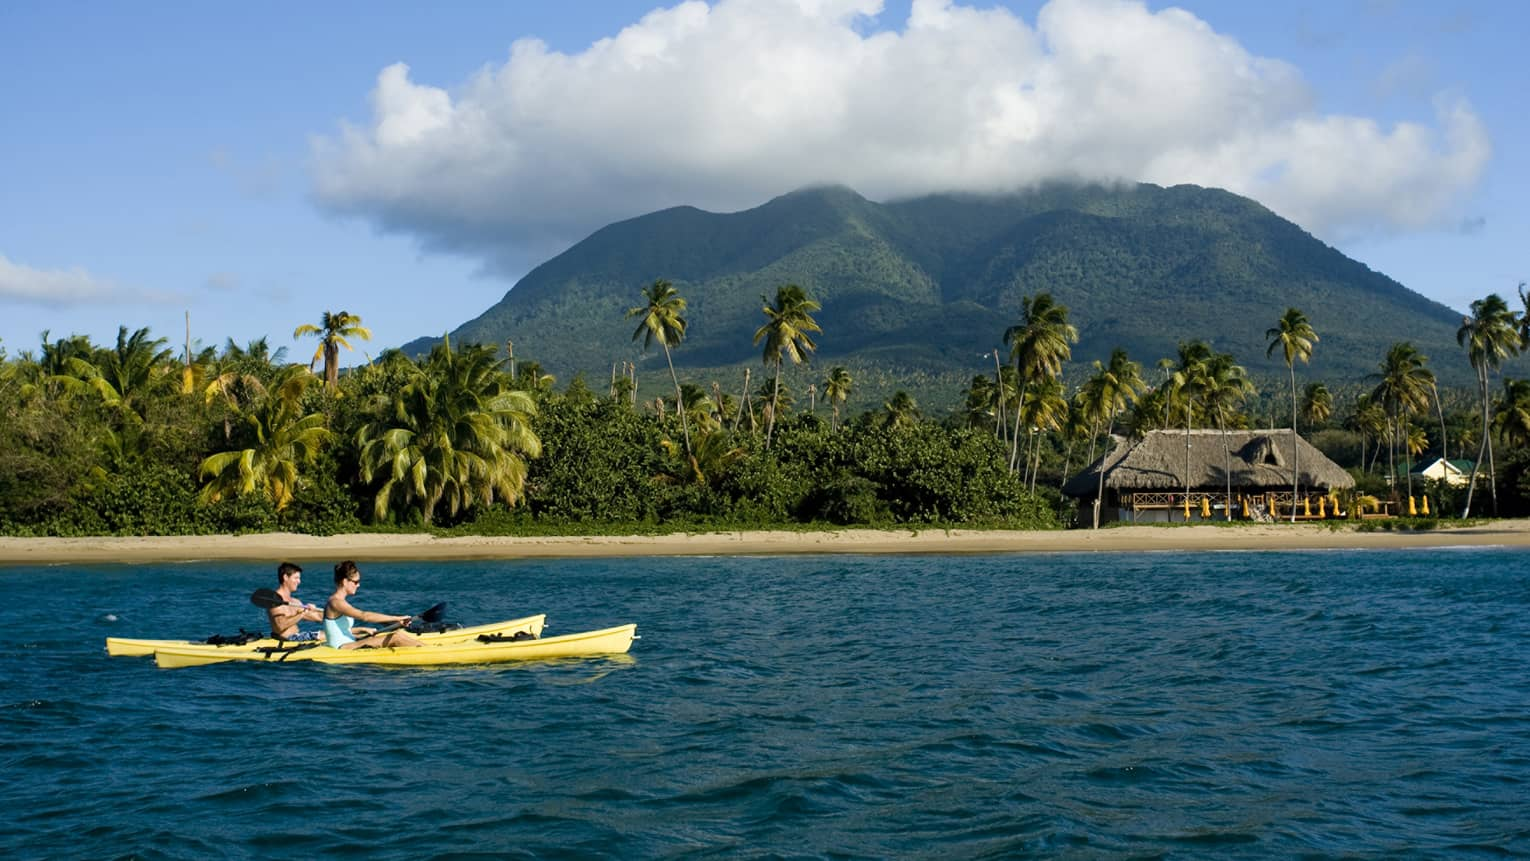 Two people in yellow kayaks on ocean by sand beach, small villa with thatched roof